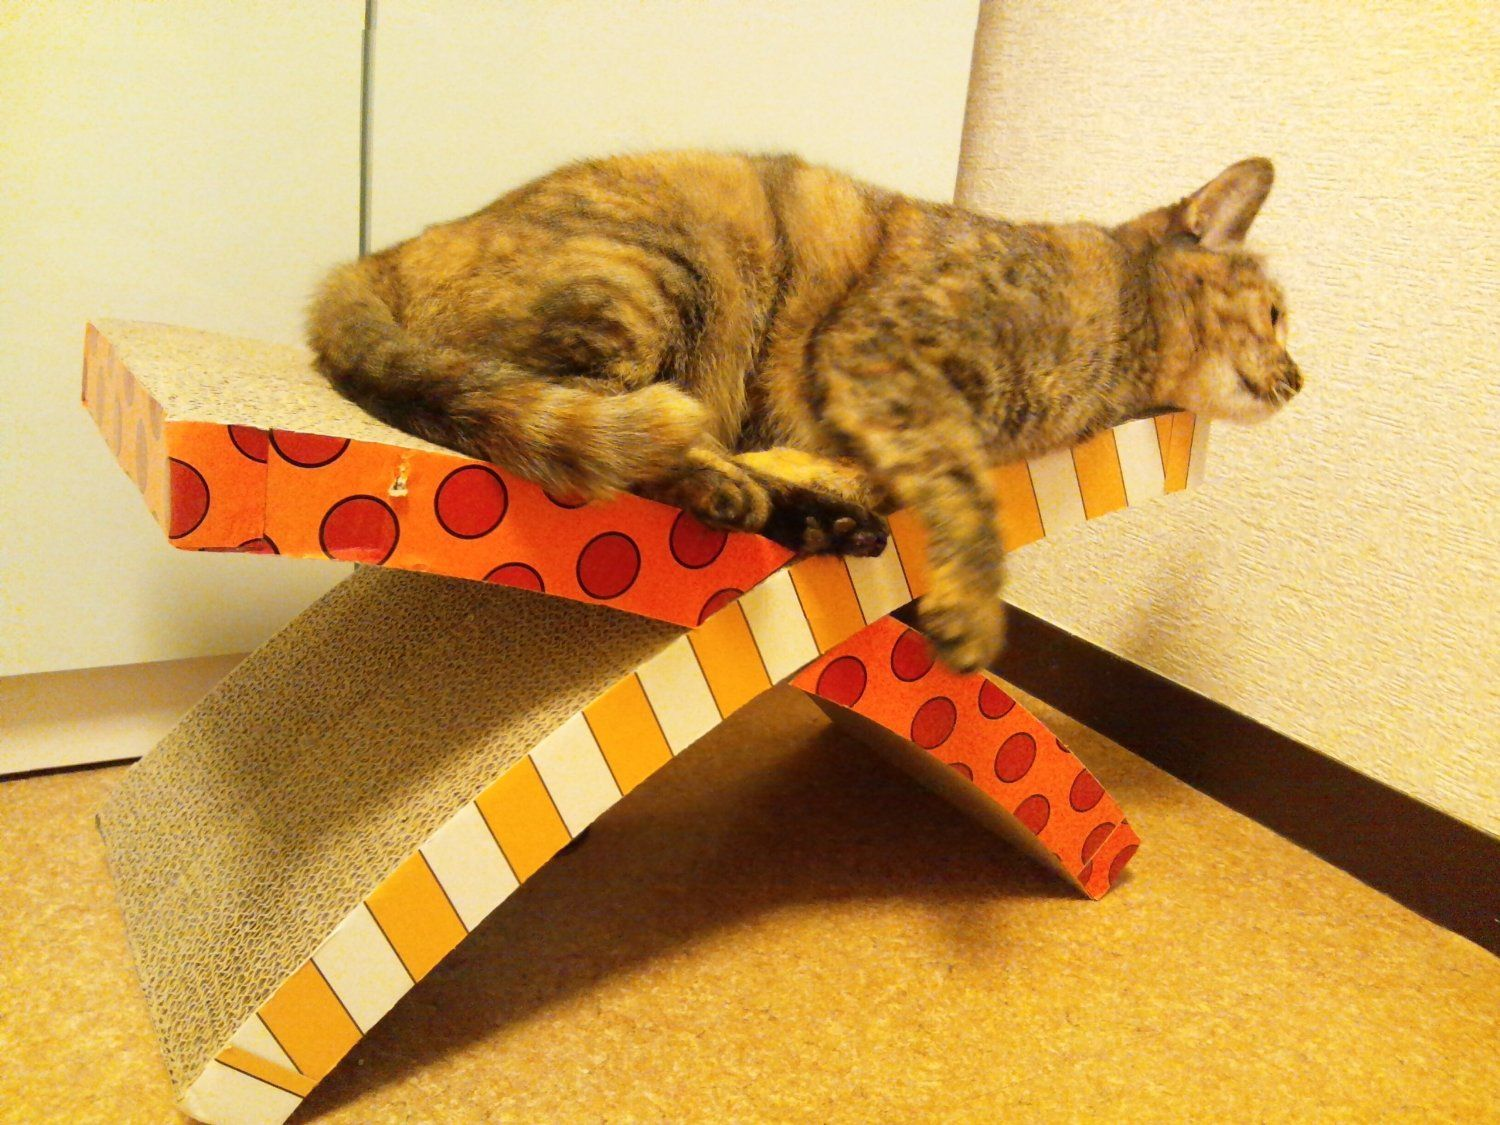 petstages soothing cat easy life hammock and scratcher   offers the luxury of a restful hammock petstages soothing cat easy life hammock and scratcher   offers      rh   pinterest